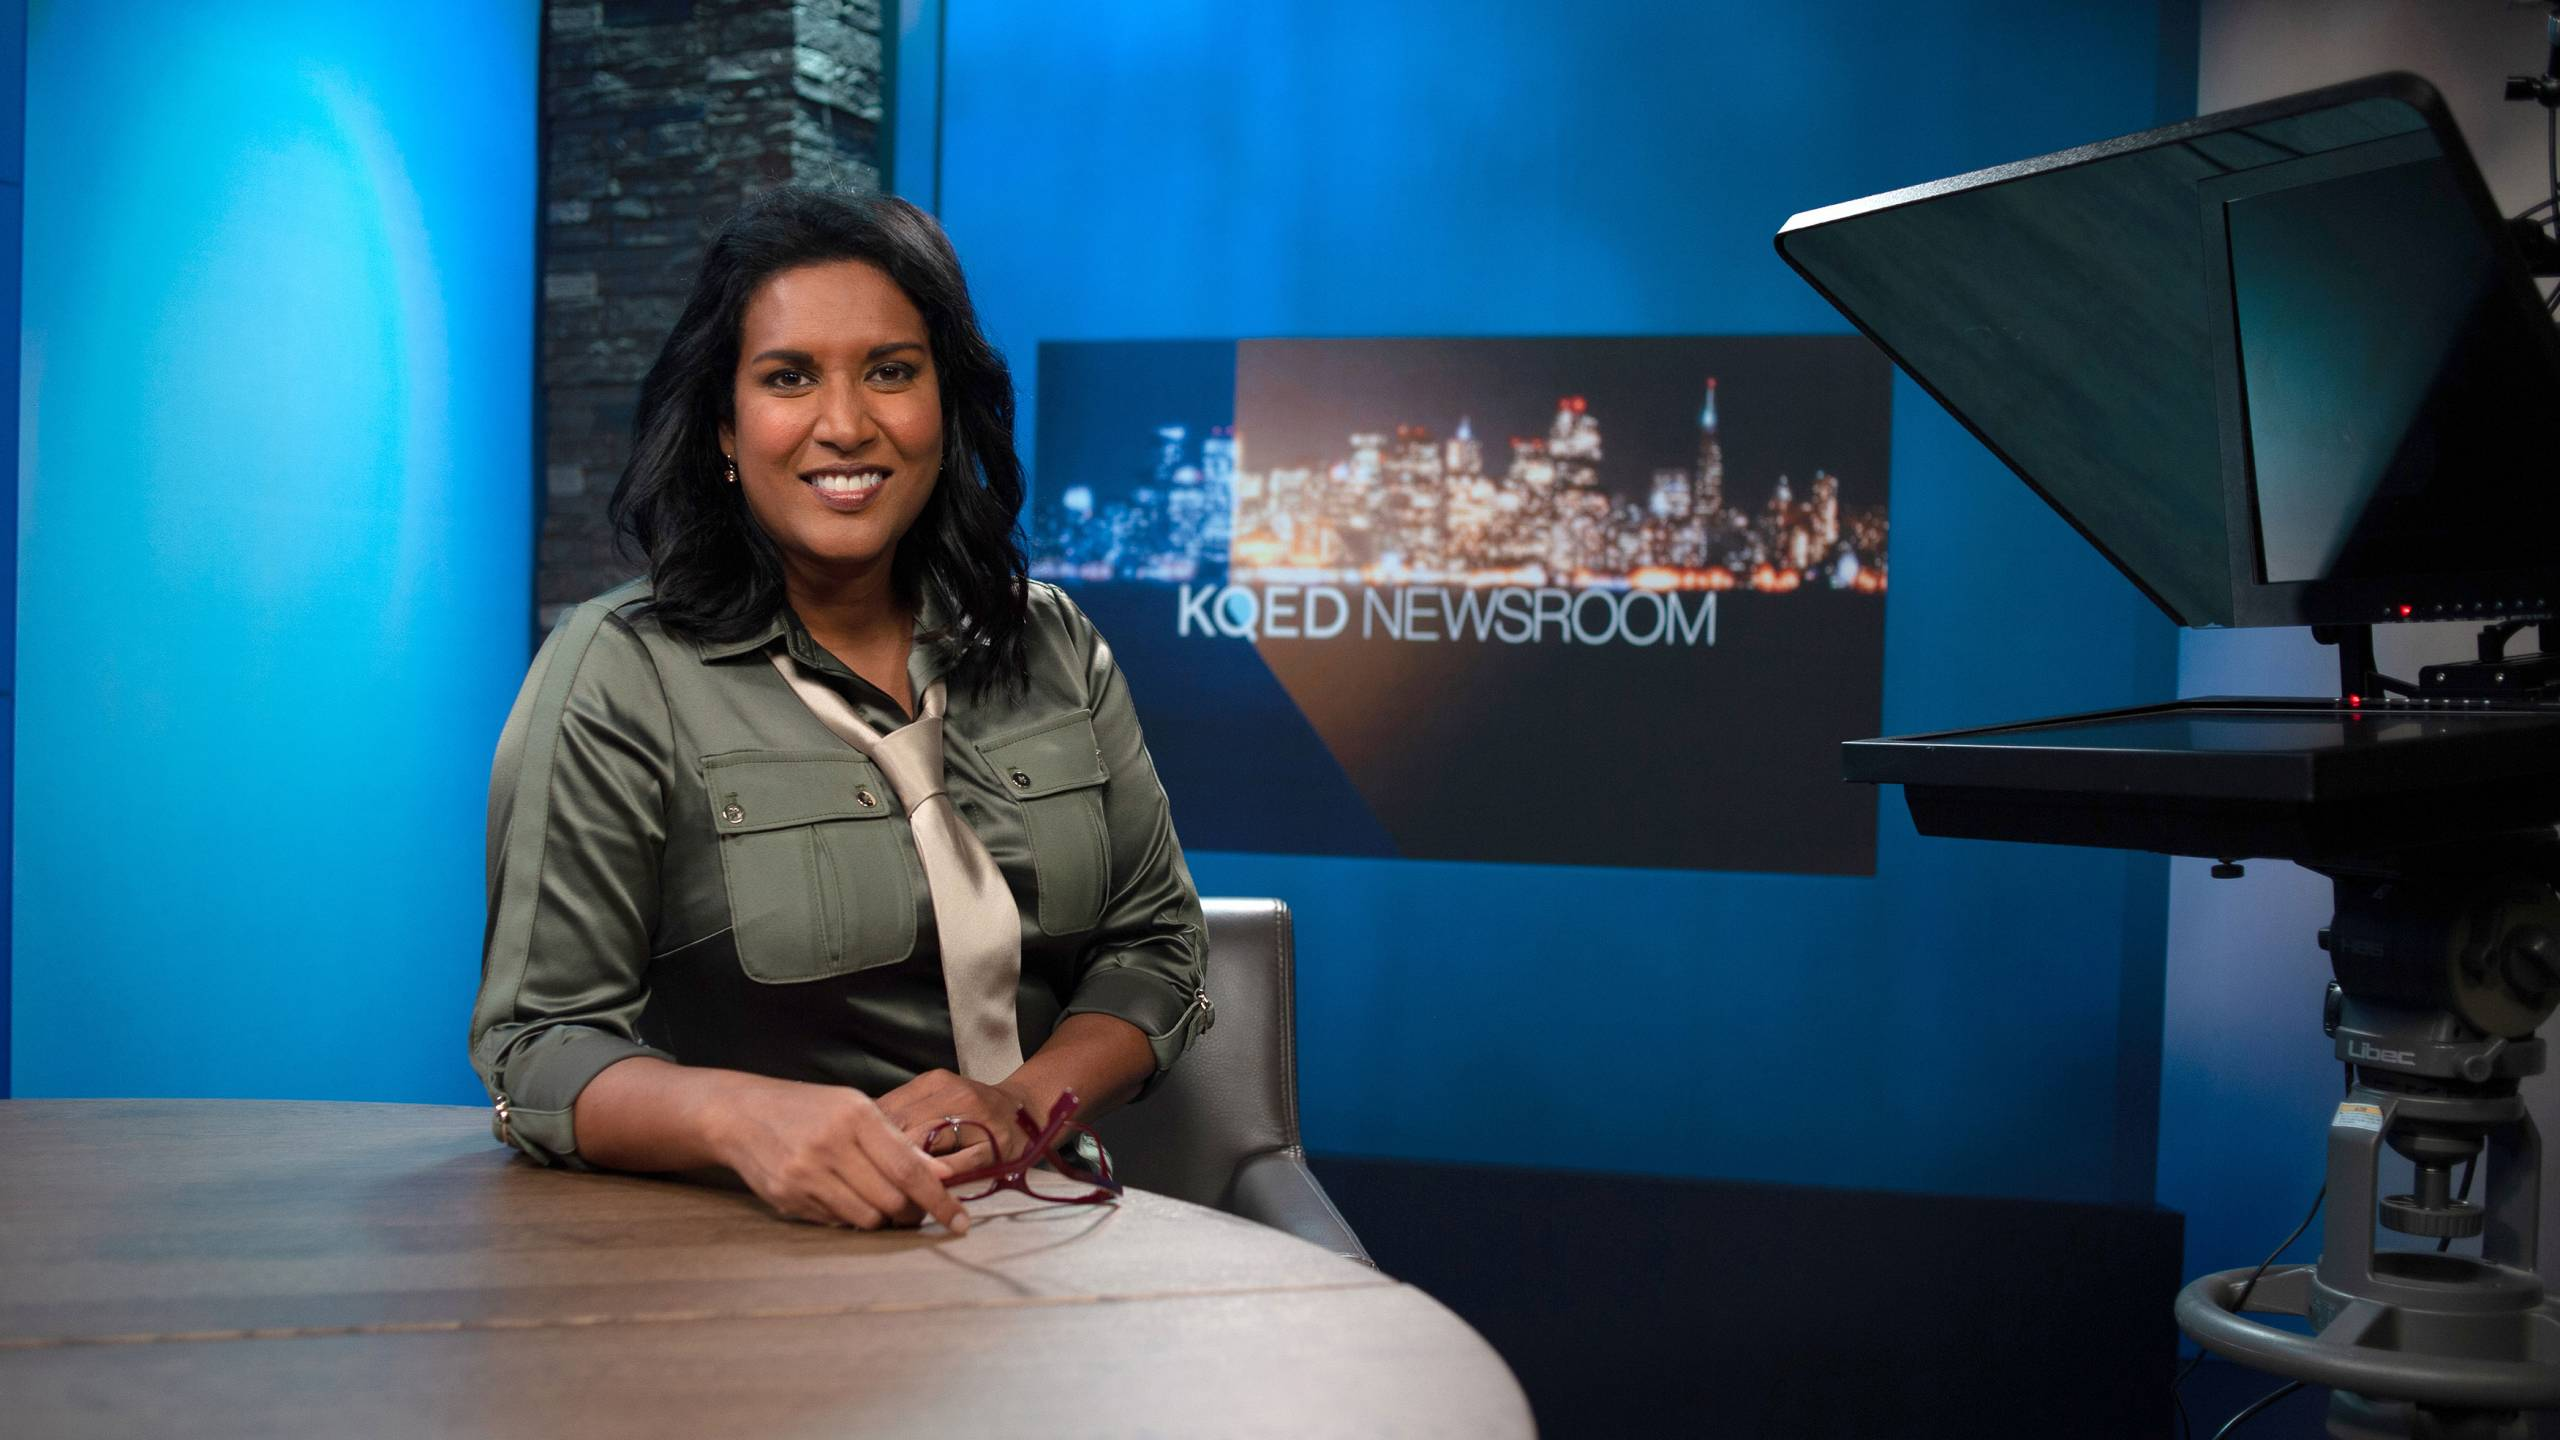 Priya David Clemens on the KQED Newsroom set